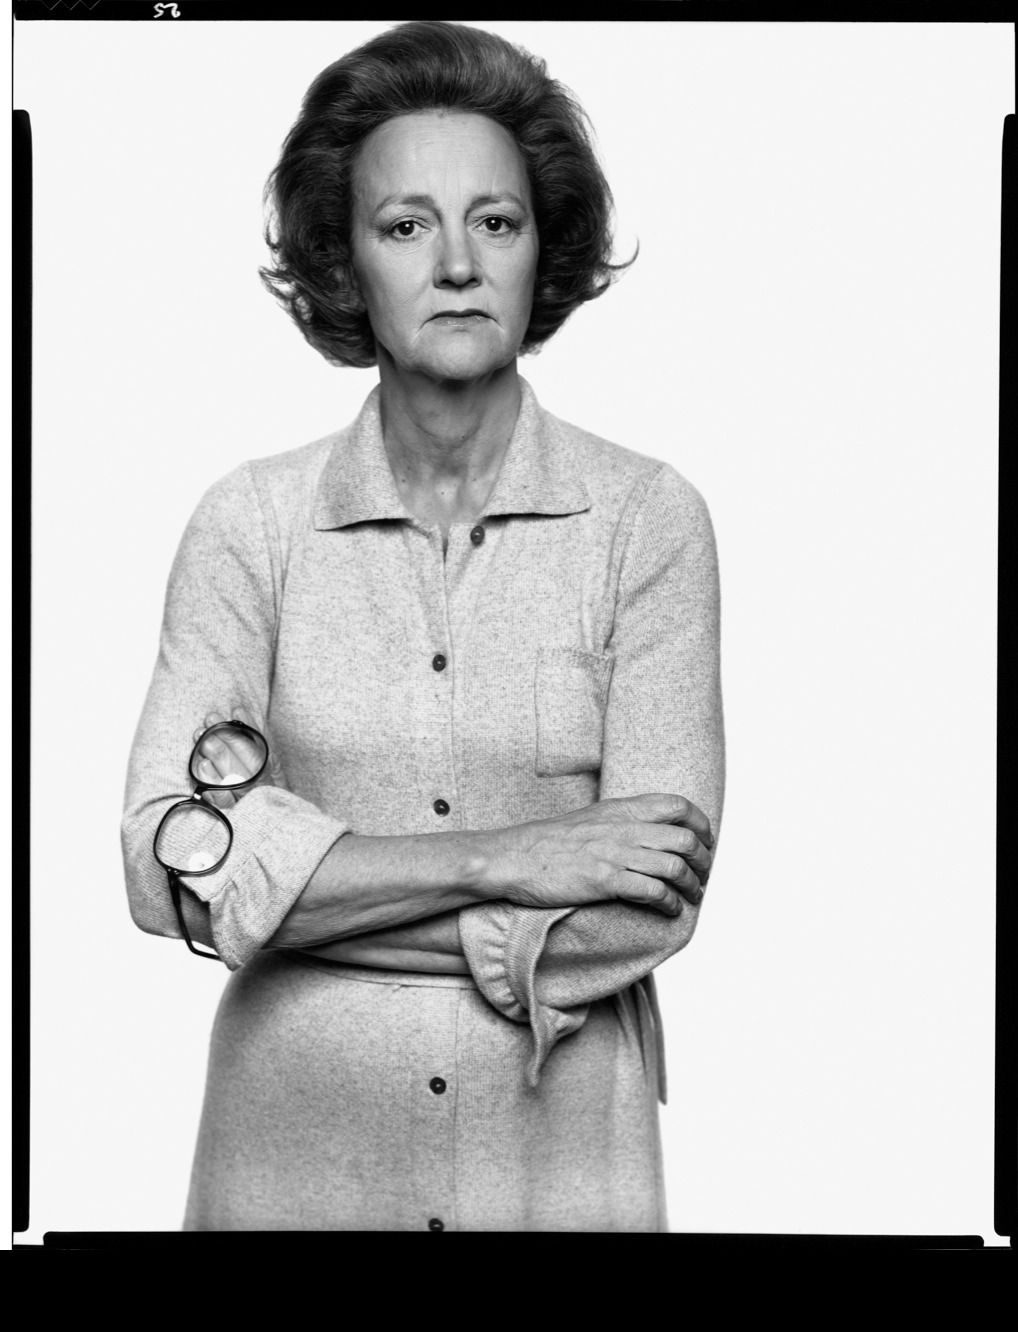 Photograph by Richard Avedon © The Richard Avedon Foundation From the Collection of The Israel Museum, Jerusalem Joint gift of Gagosian Gallery and the American Contemporary Art Foundation, Leonard A. Lauder, President, to American Friends of the Israel Museum